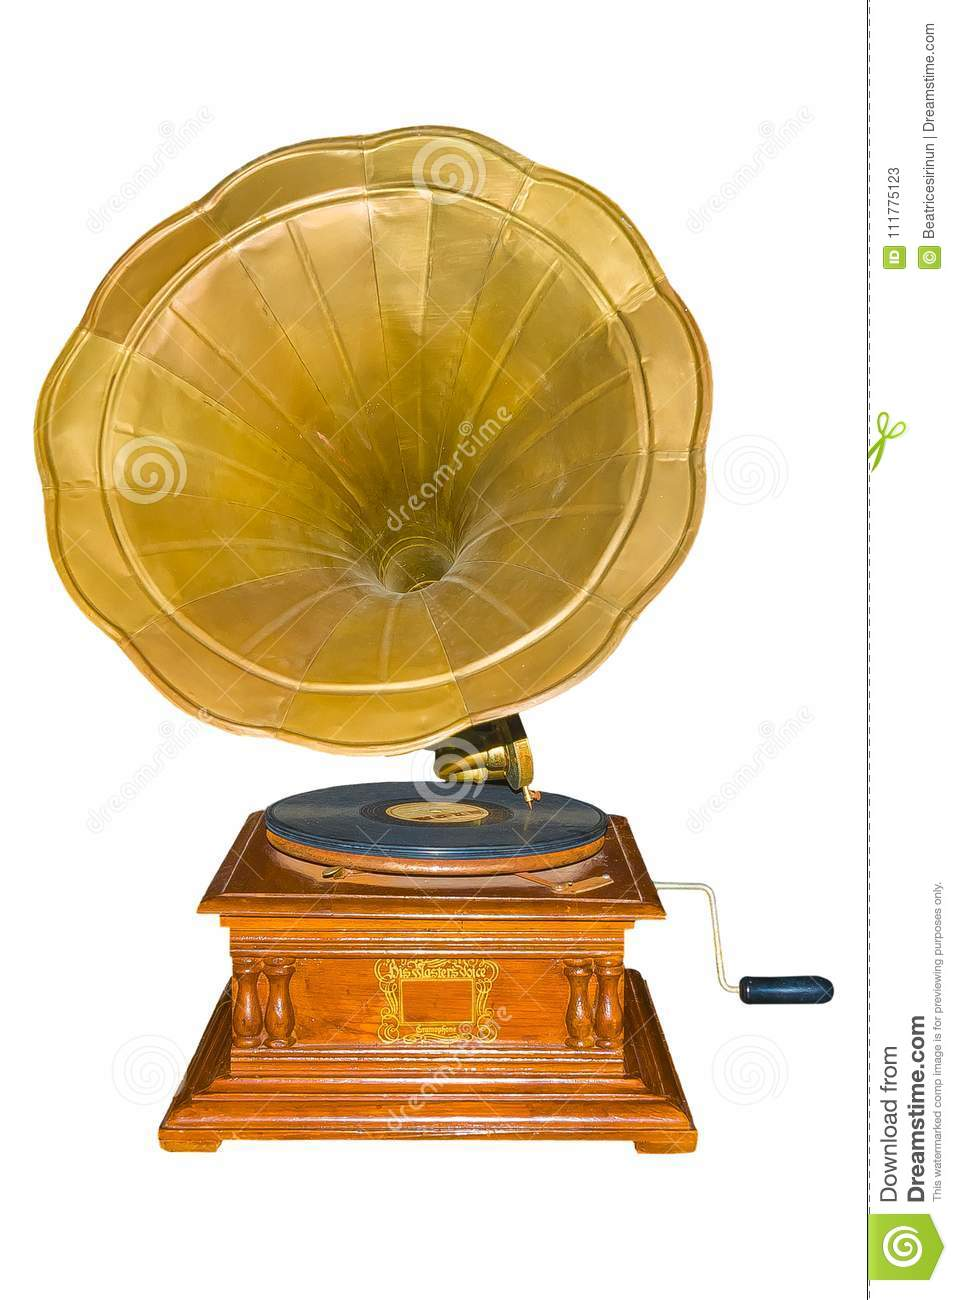 Vintage Gramophone with clipping path.